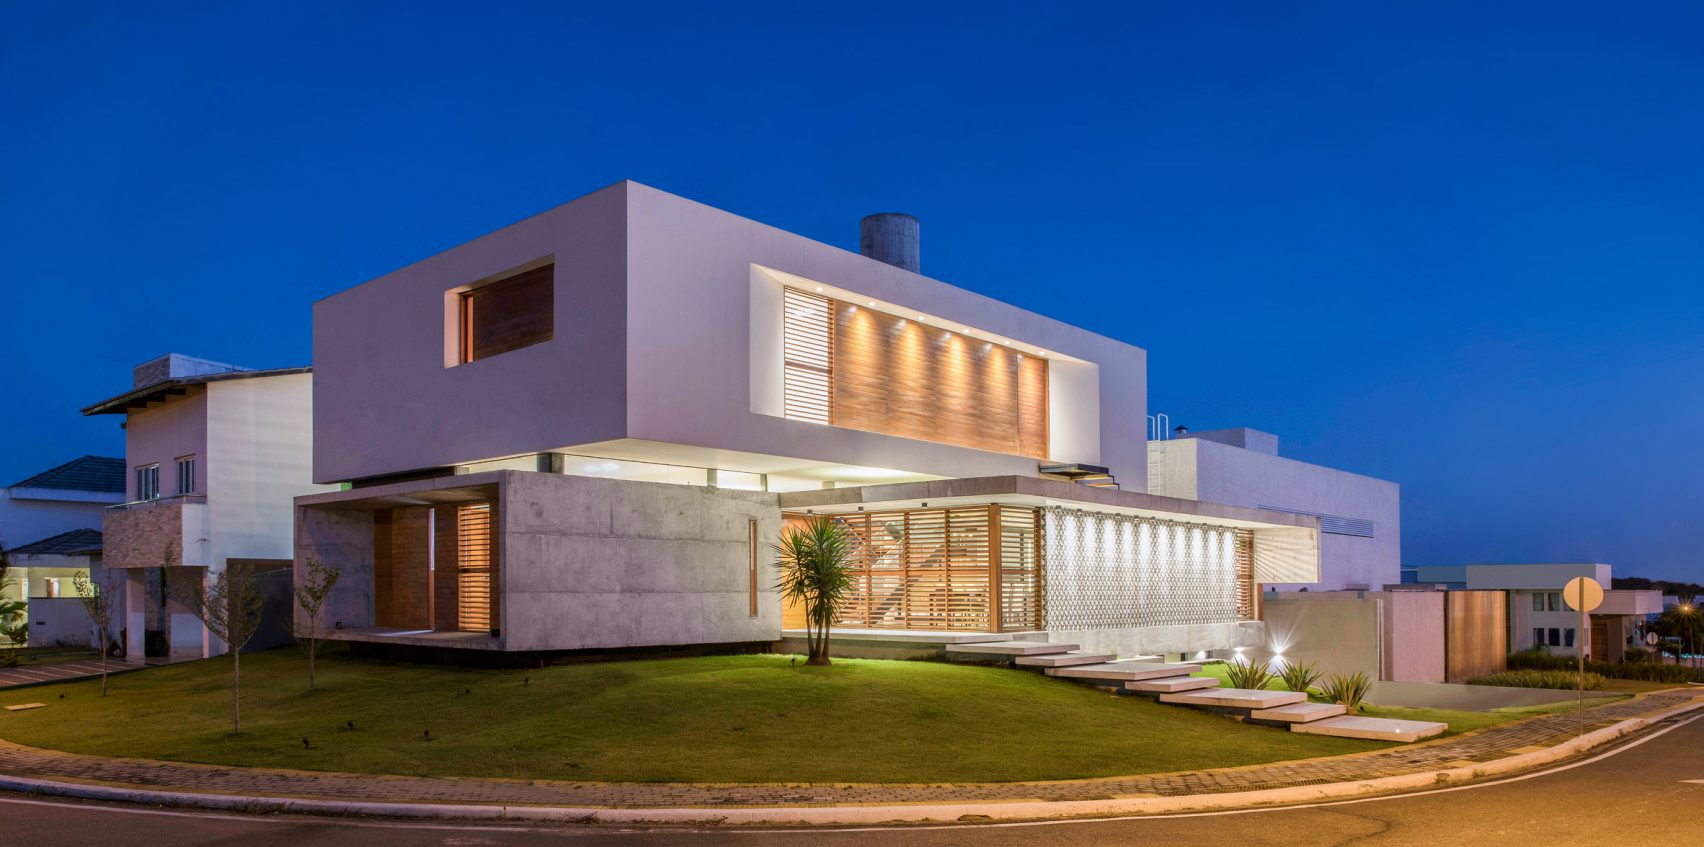 Casa IF by Martins Lucena Architects